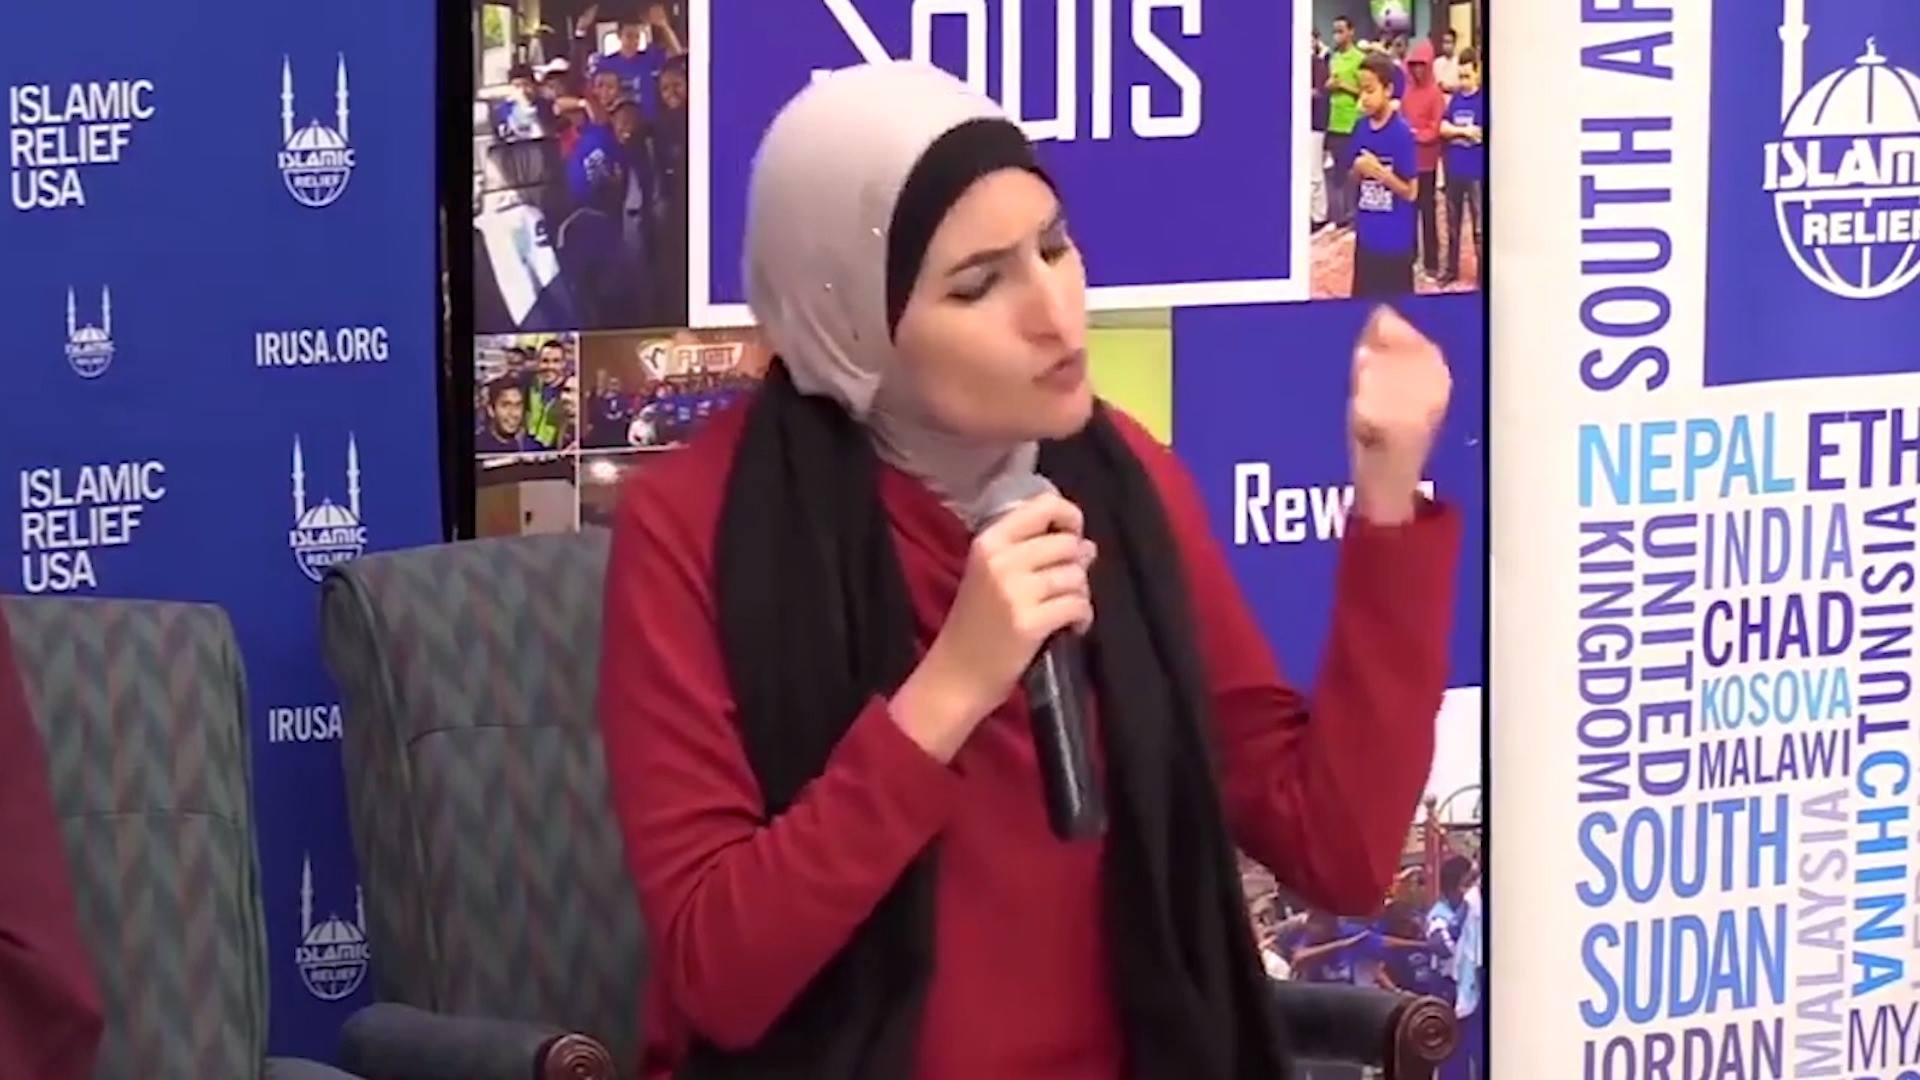 Is Linda Sarsour really a feminist?